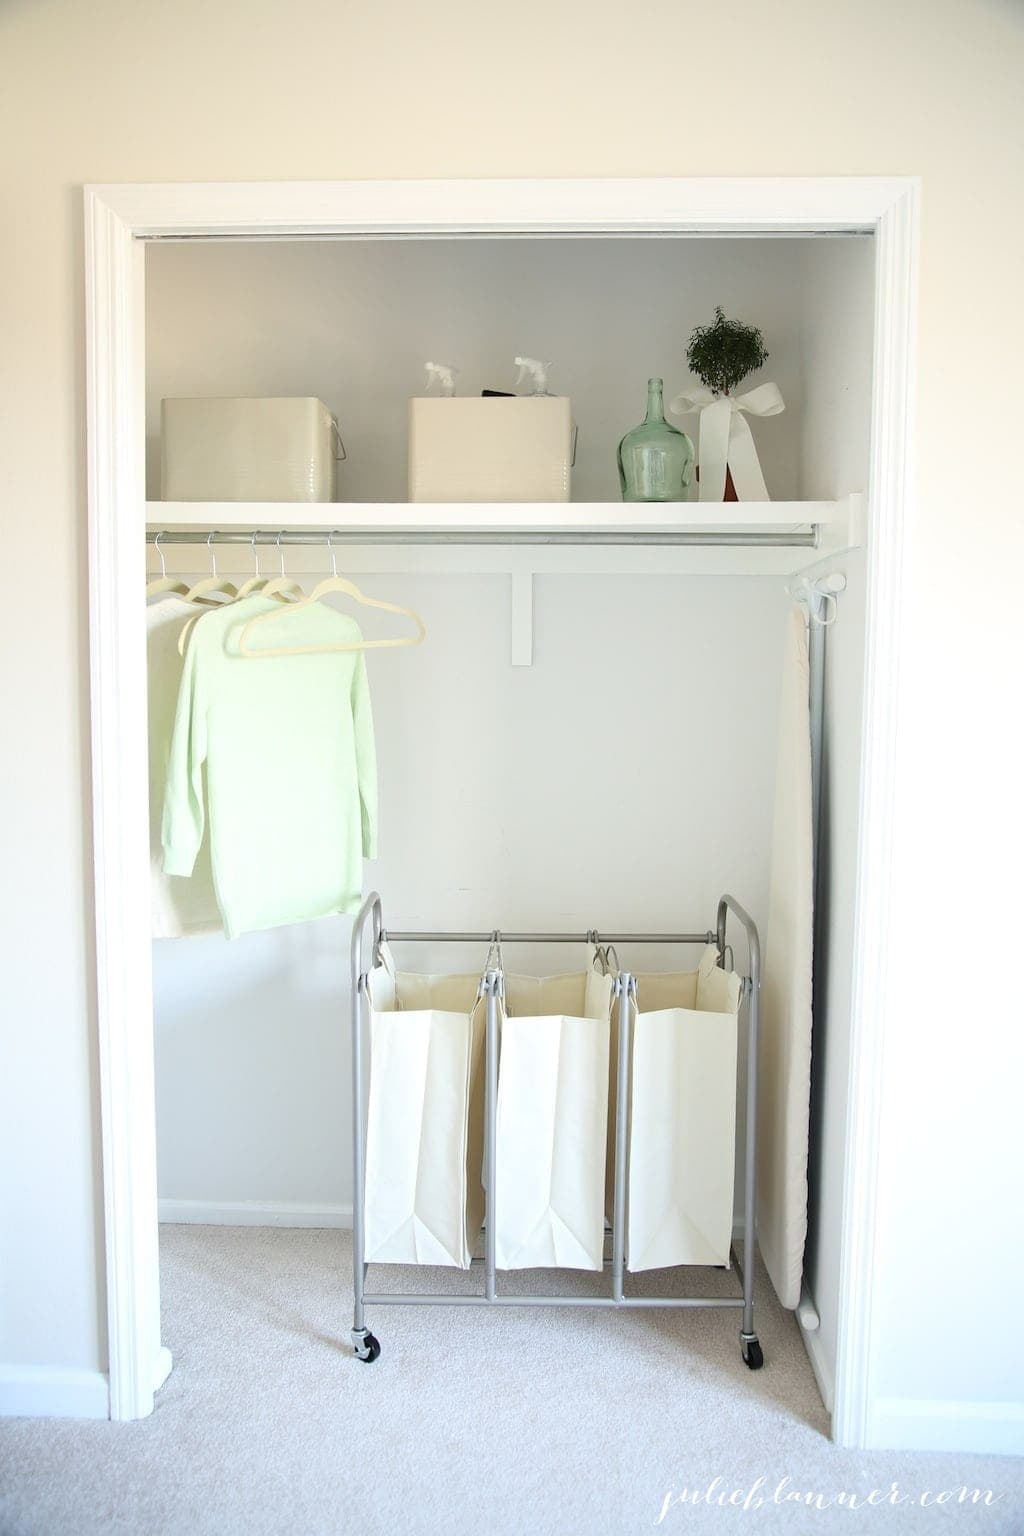 Pretty laundry room with easy organization ideas to maximize space & function!